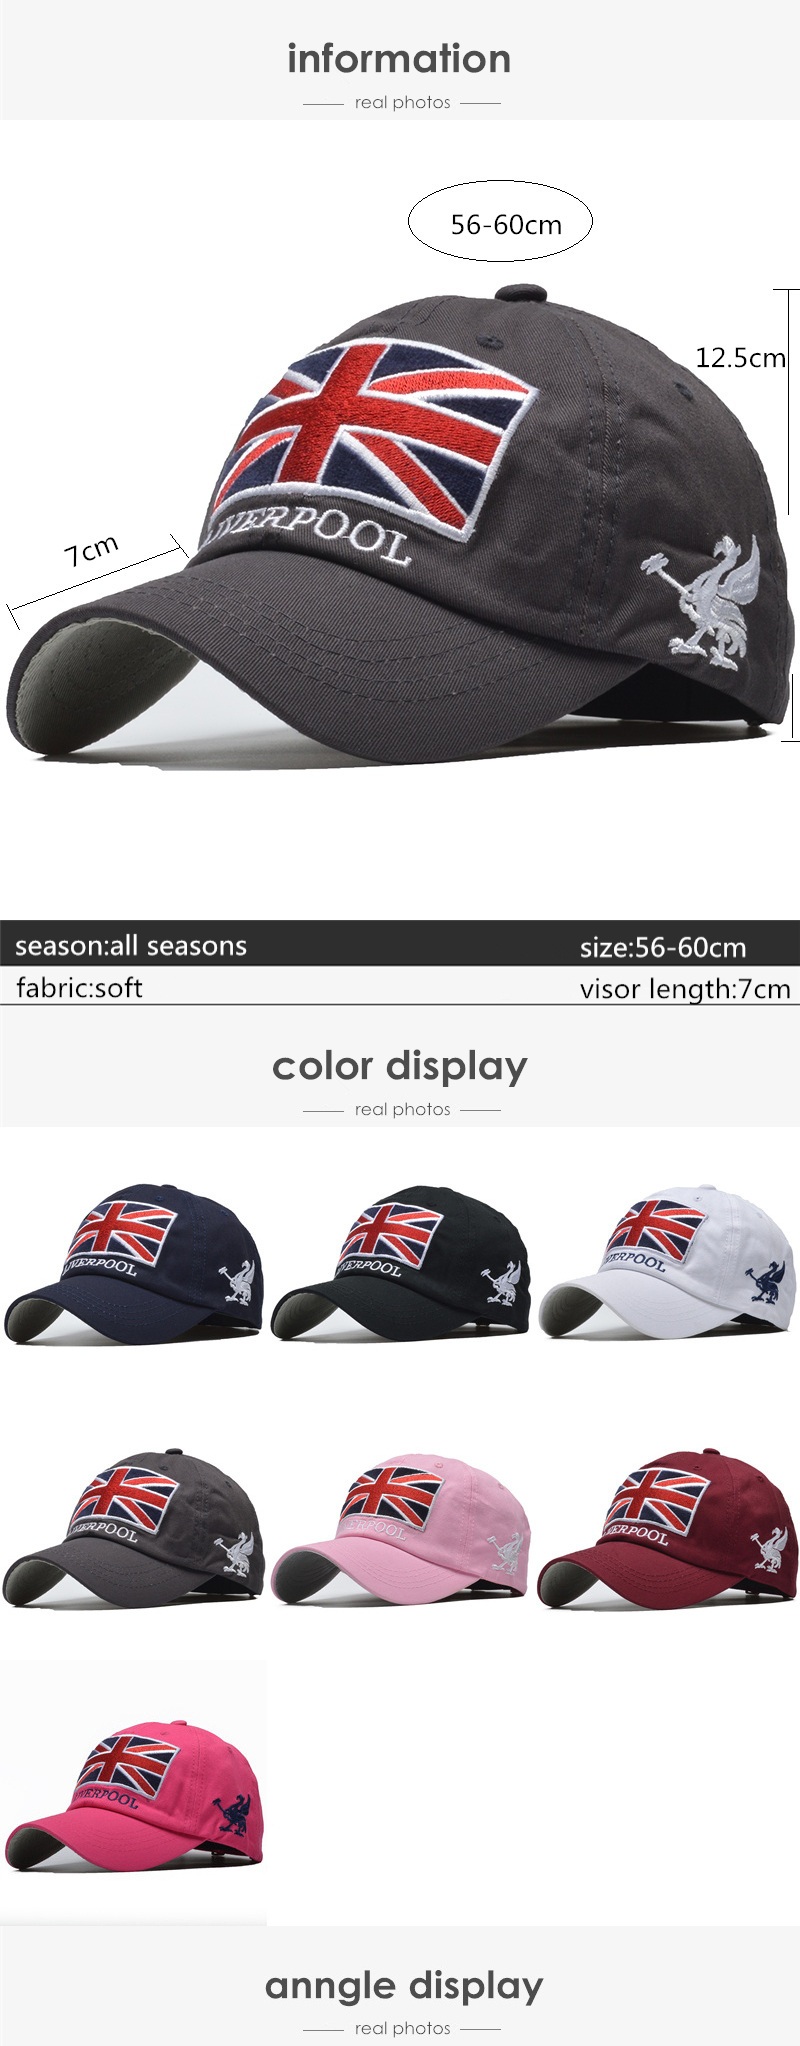 [NORTHWOOD] New Men's Baseball Cap Embroidery Brand Snapback Womens Baseball Hats Cotton Dad Hat Gorra Hombre Trucker Cap